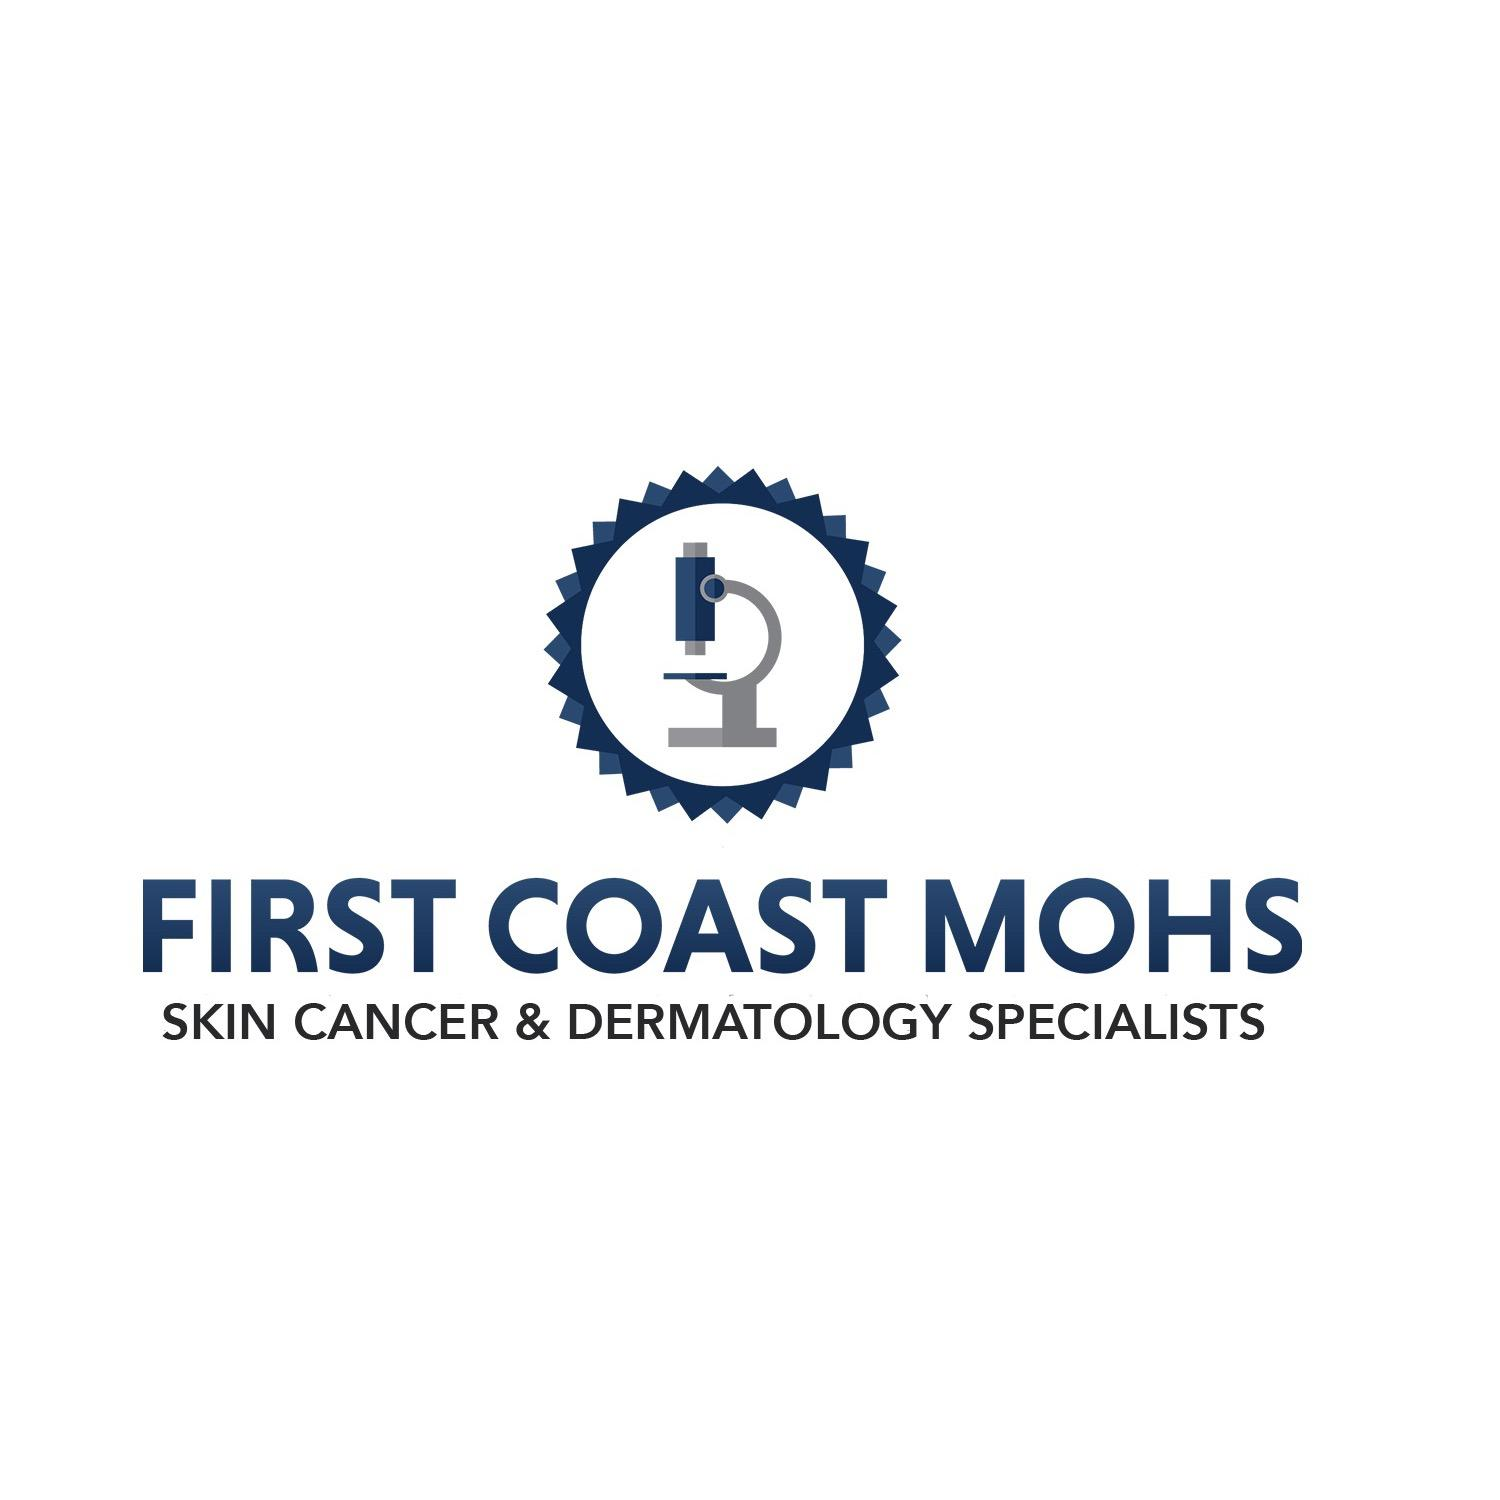 First Coast Mohs of Ponte Vedra